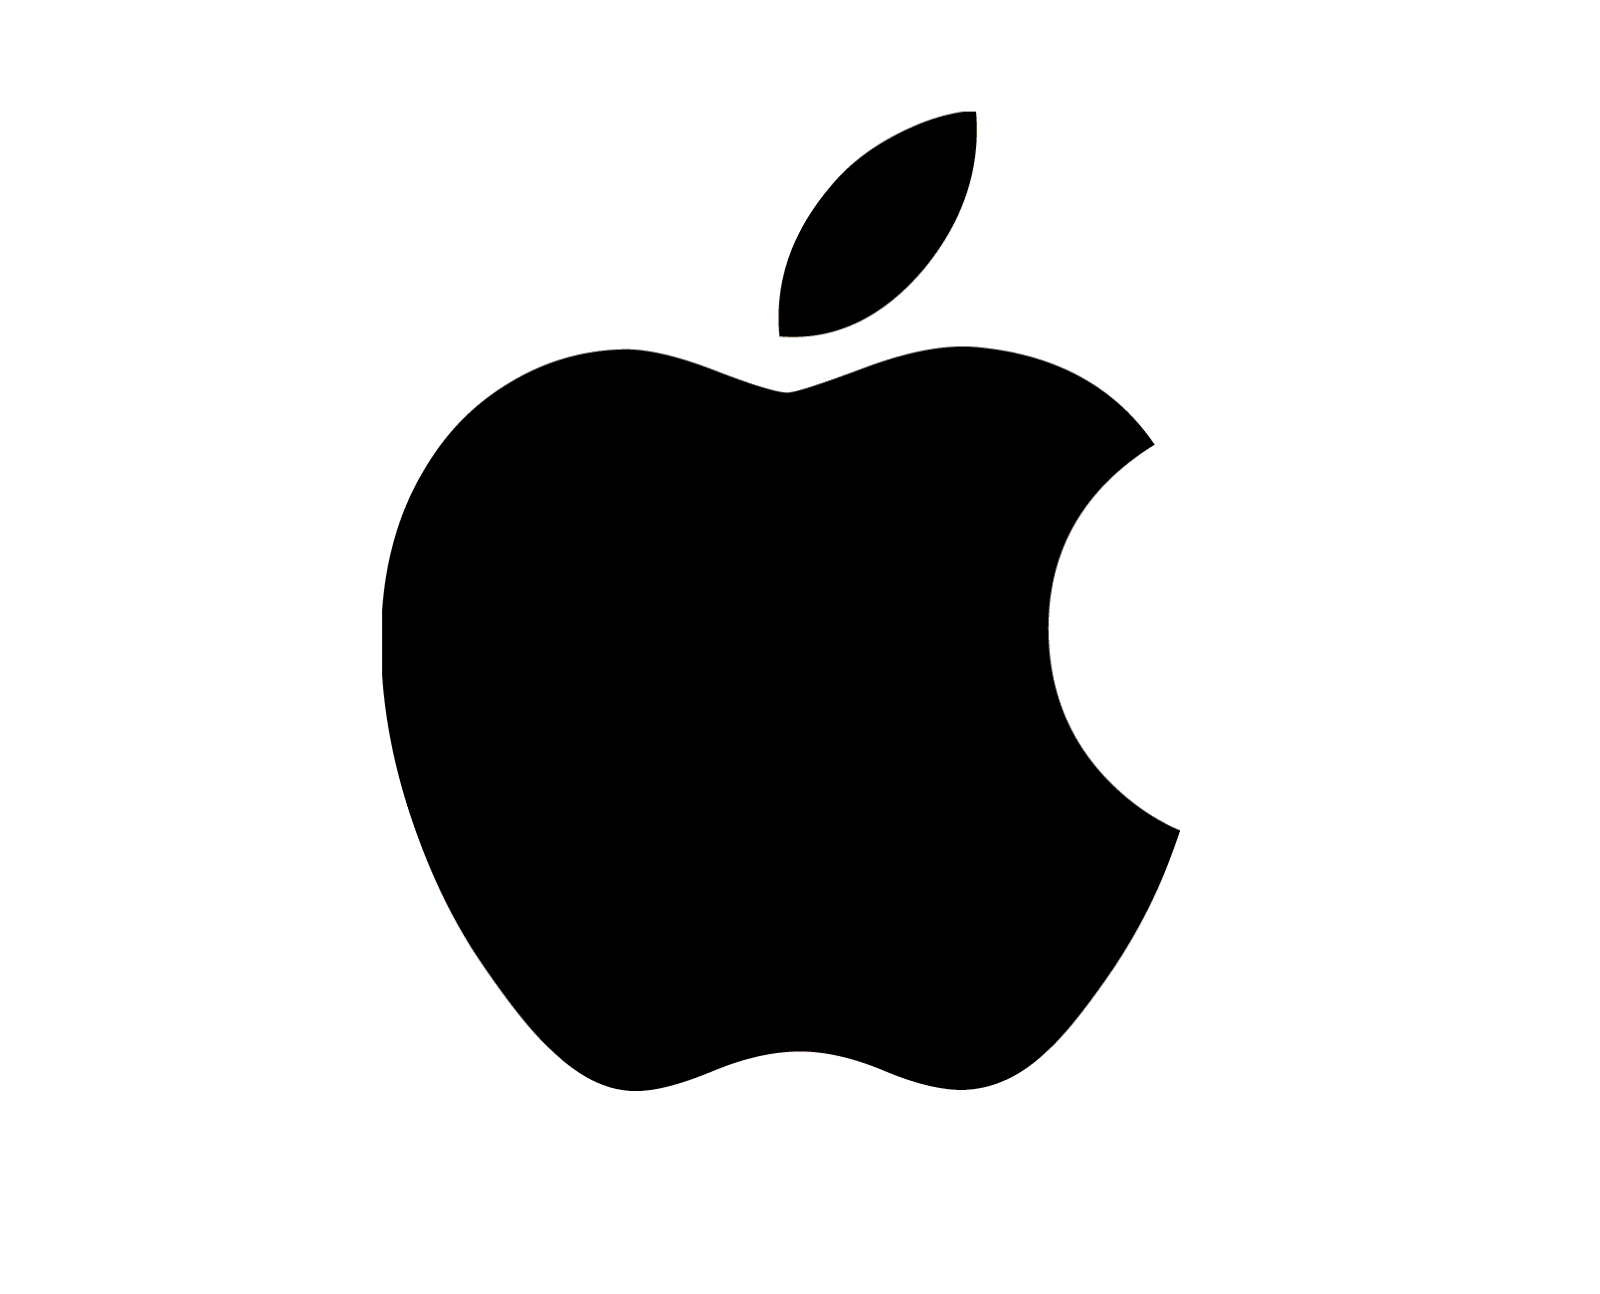 Official Apple Logo 2013 Pictures 5 HD Wallpapers pngOfficial Apple Logo 2013